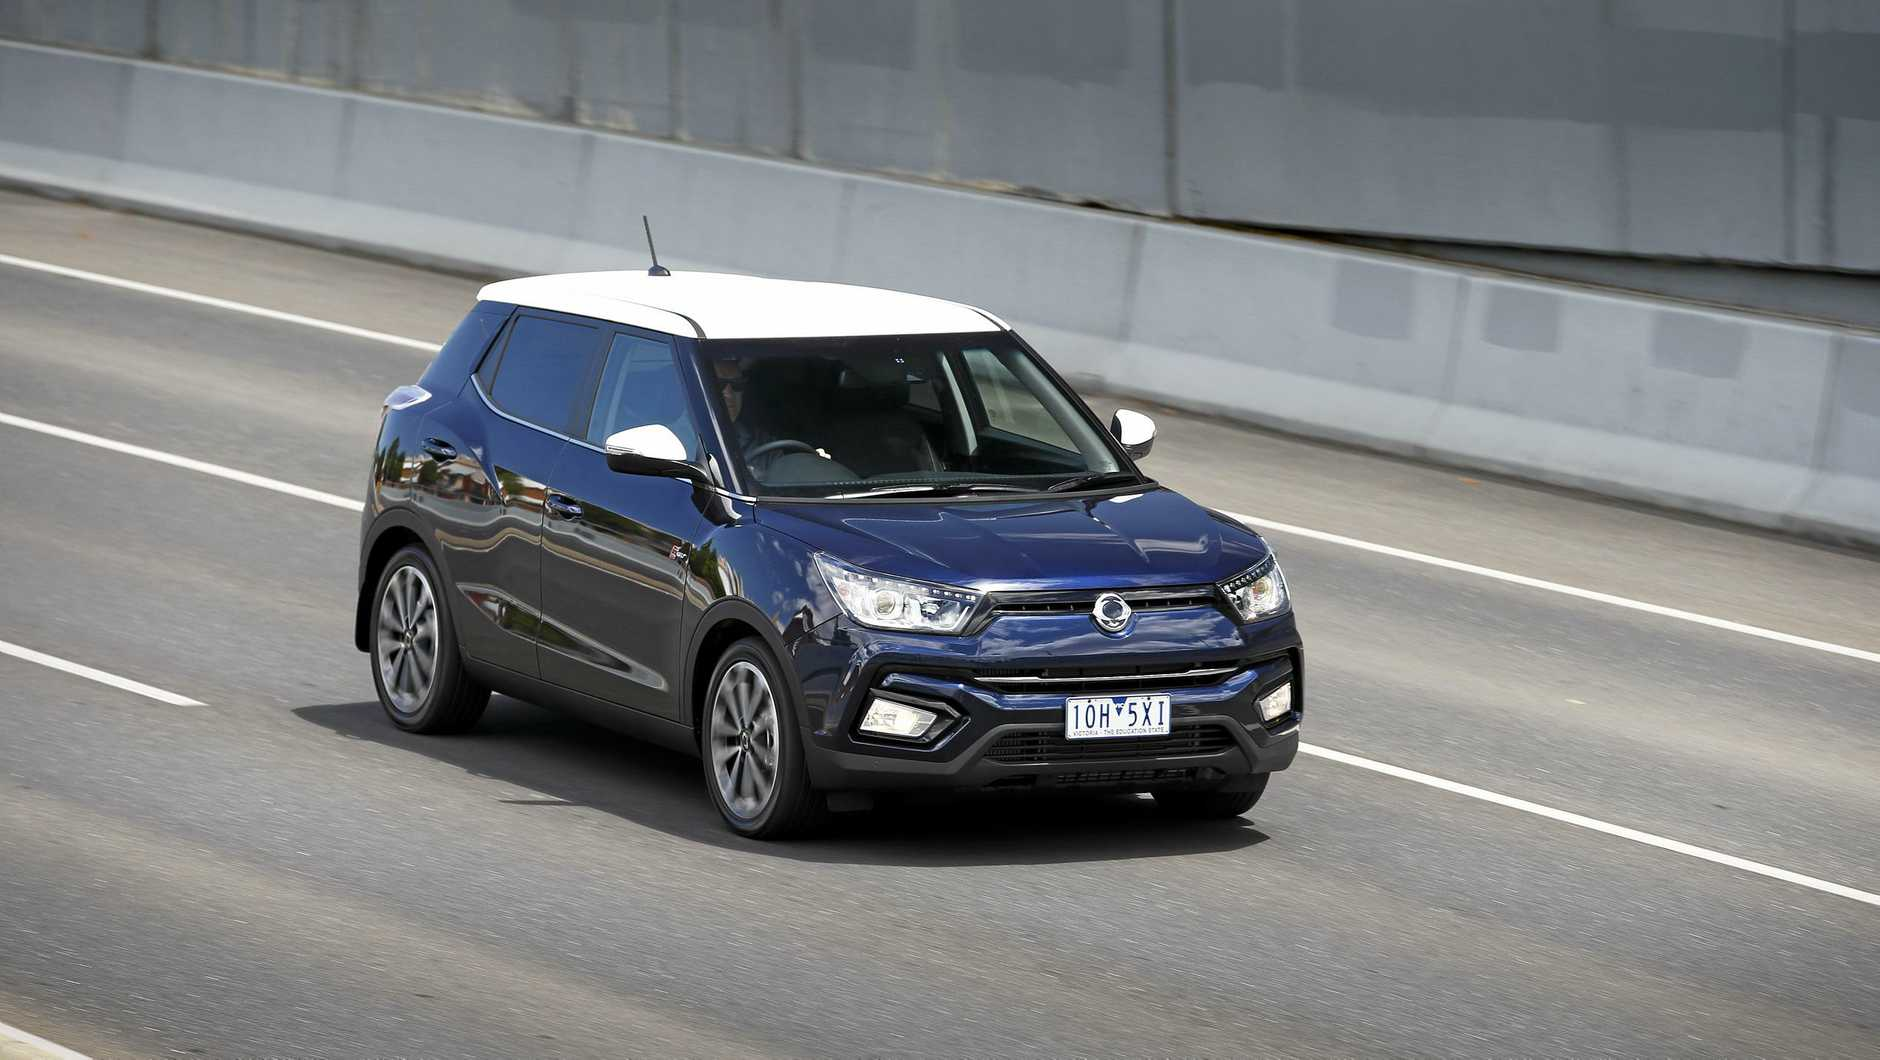 The star of the relaunched SsangYong range is the Tivoli compact SUV, which starts from $23,490 drive away. The range-topping two tone version is $34,490.